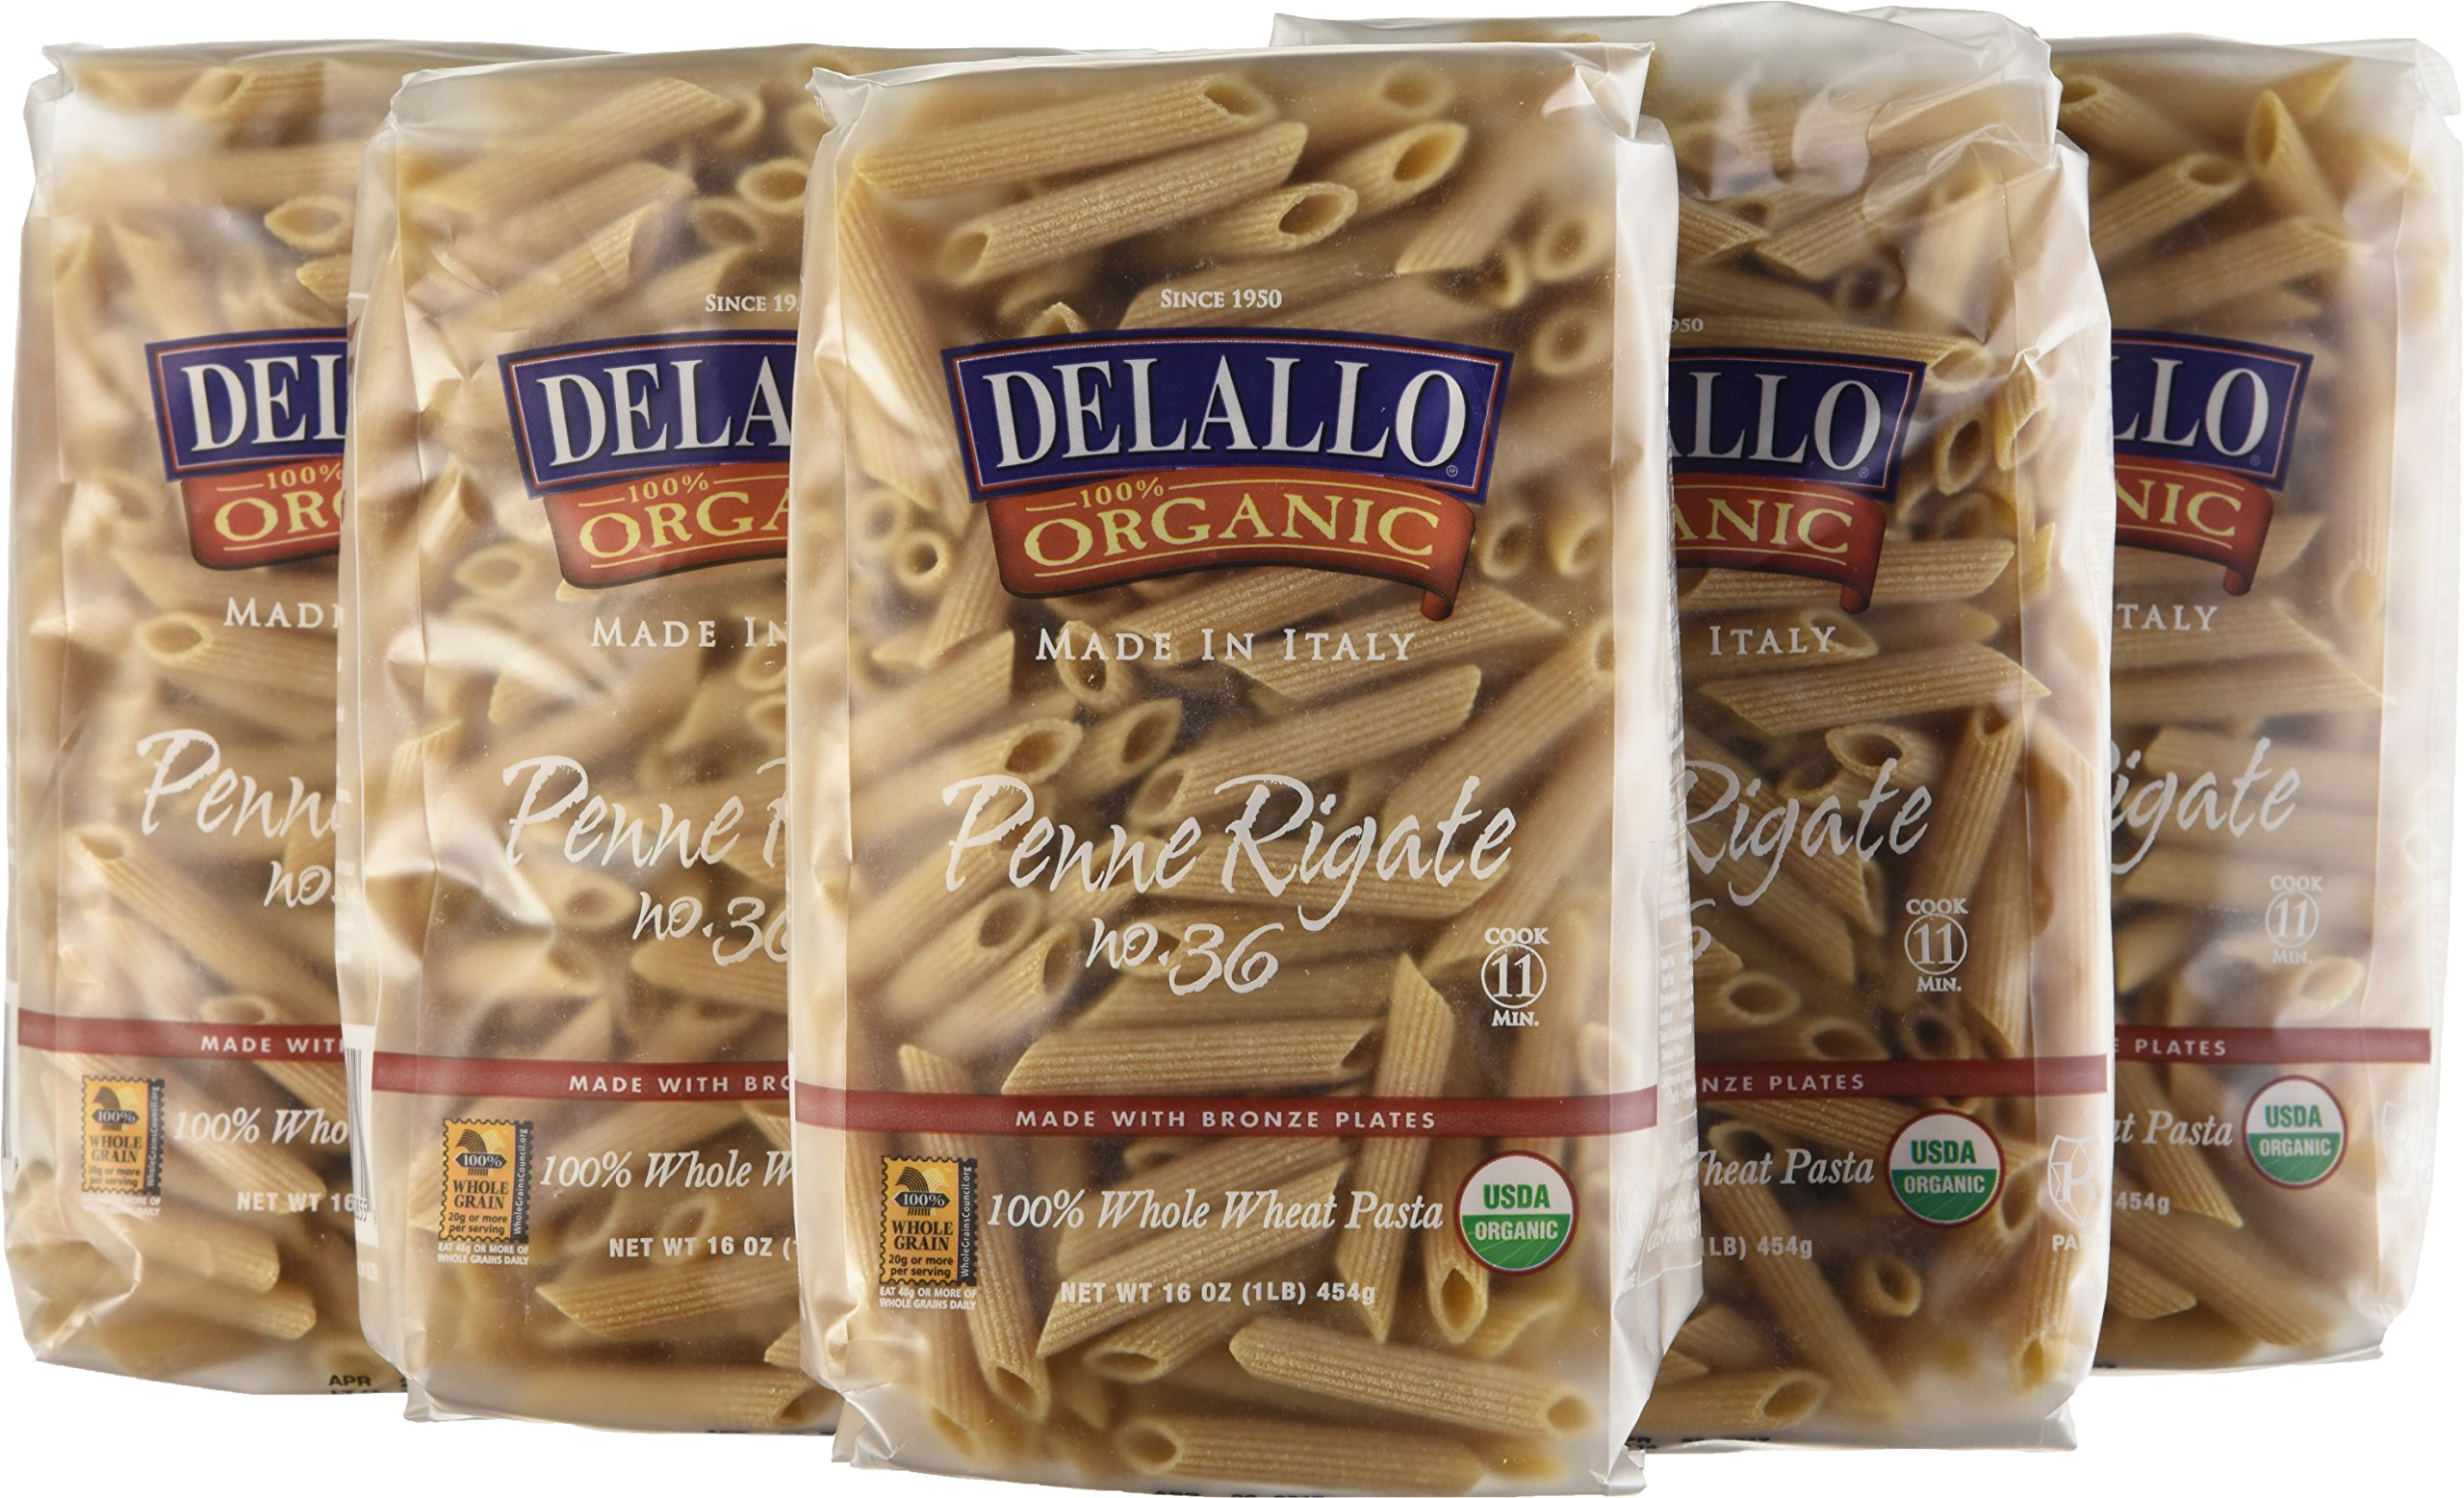 DeLallo Organic Whole Wheat Penne Rigate #36, 16 Ounce Units (Pack of 16) by DeLallo